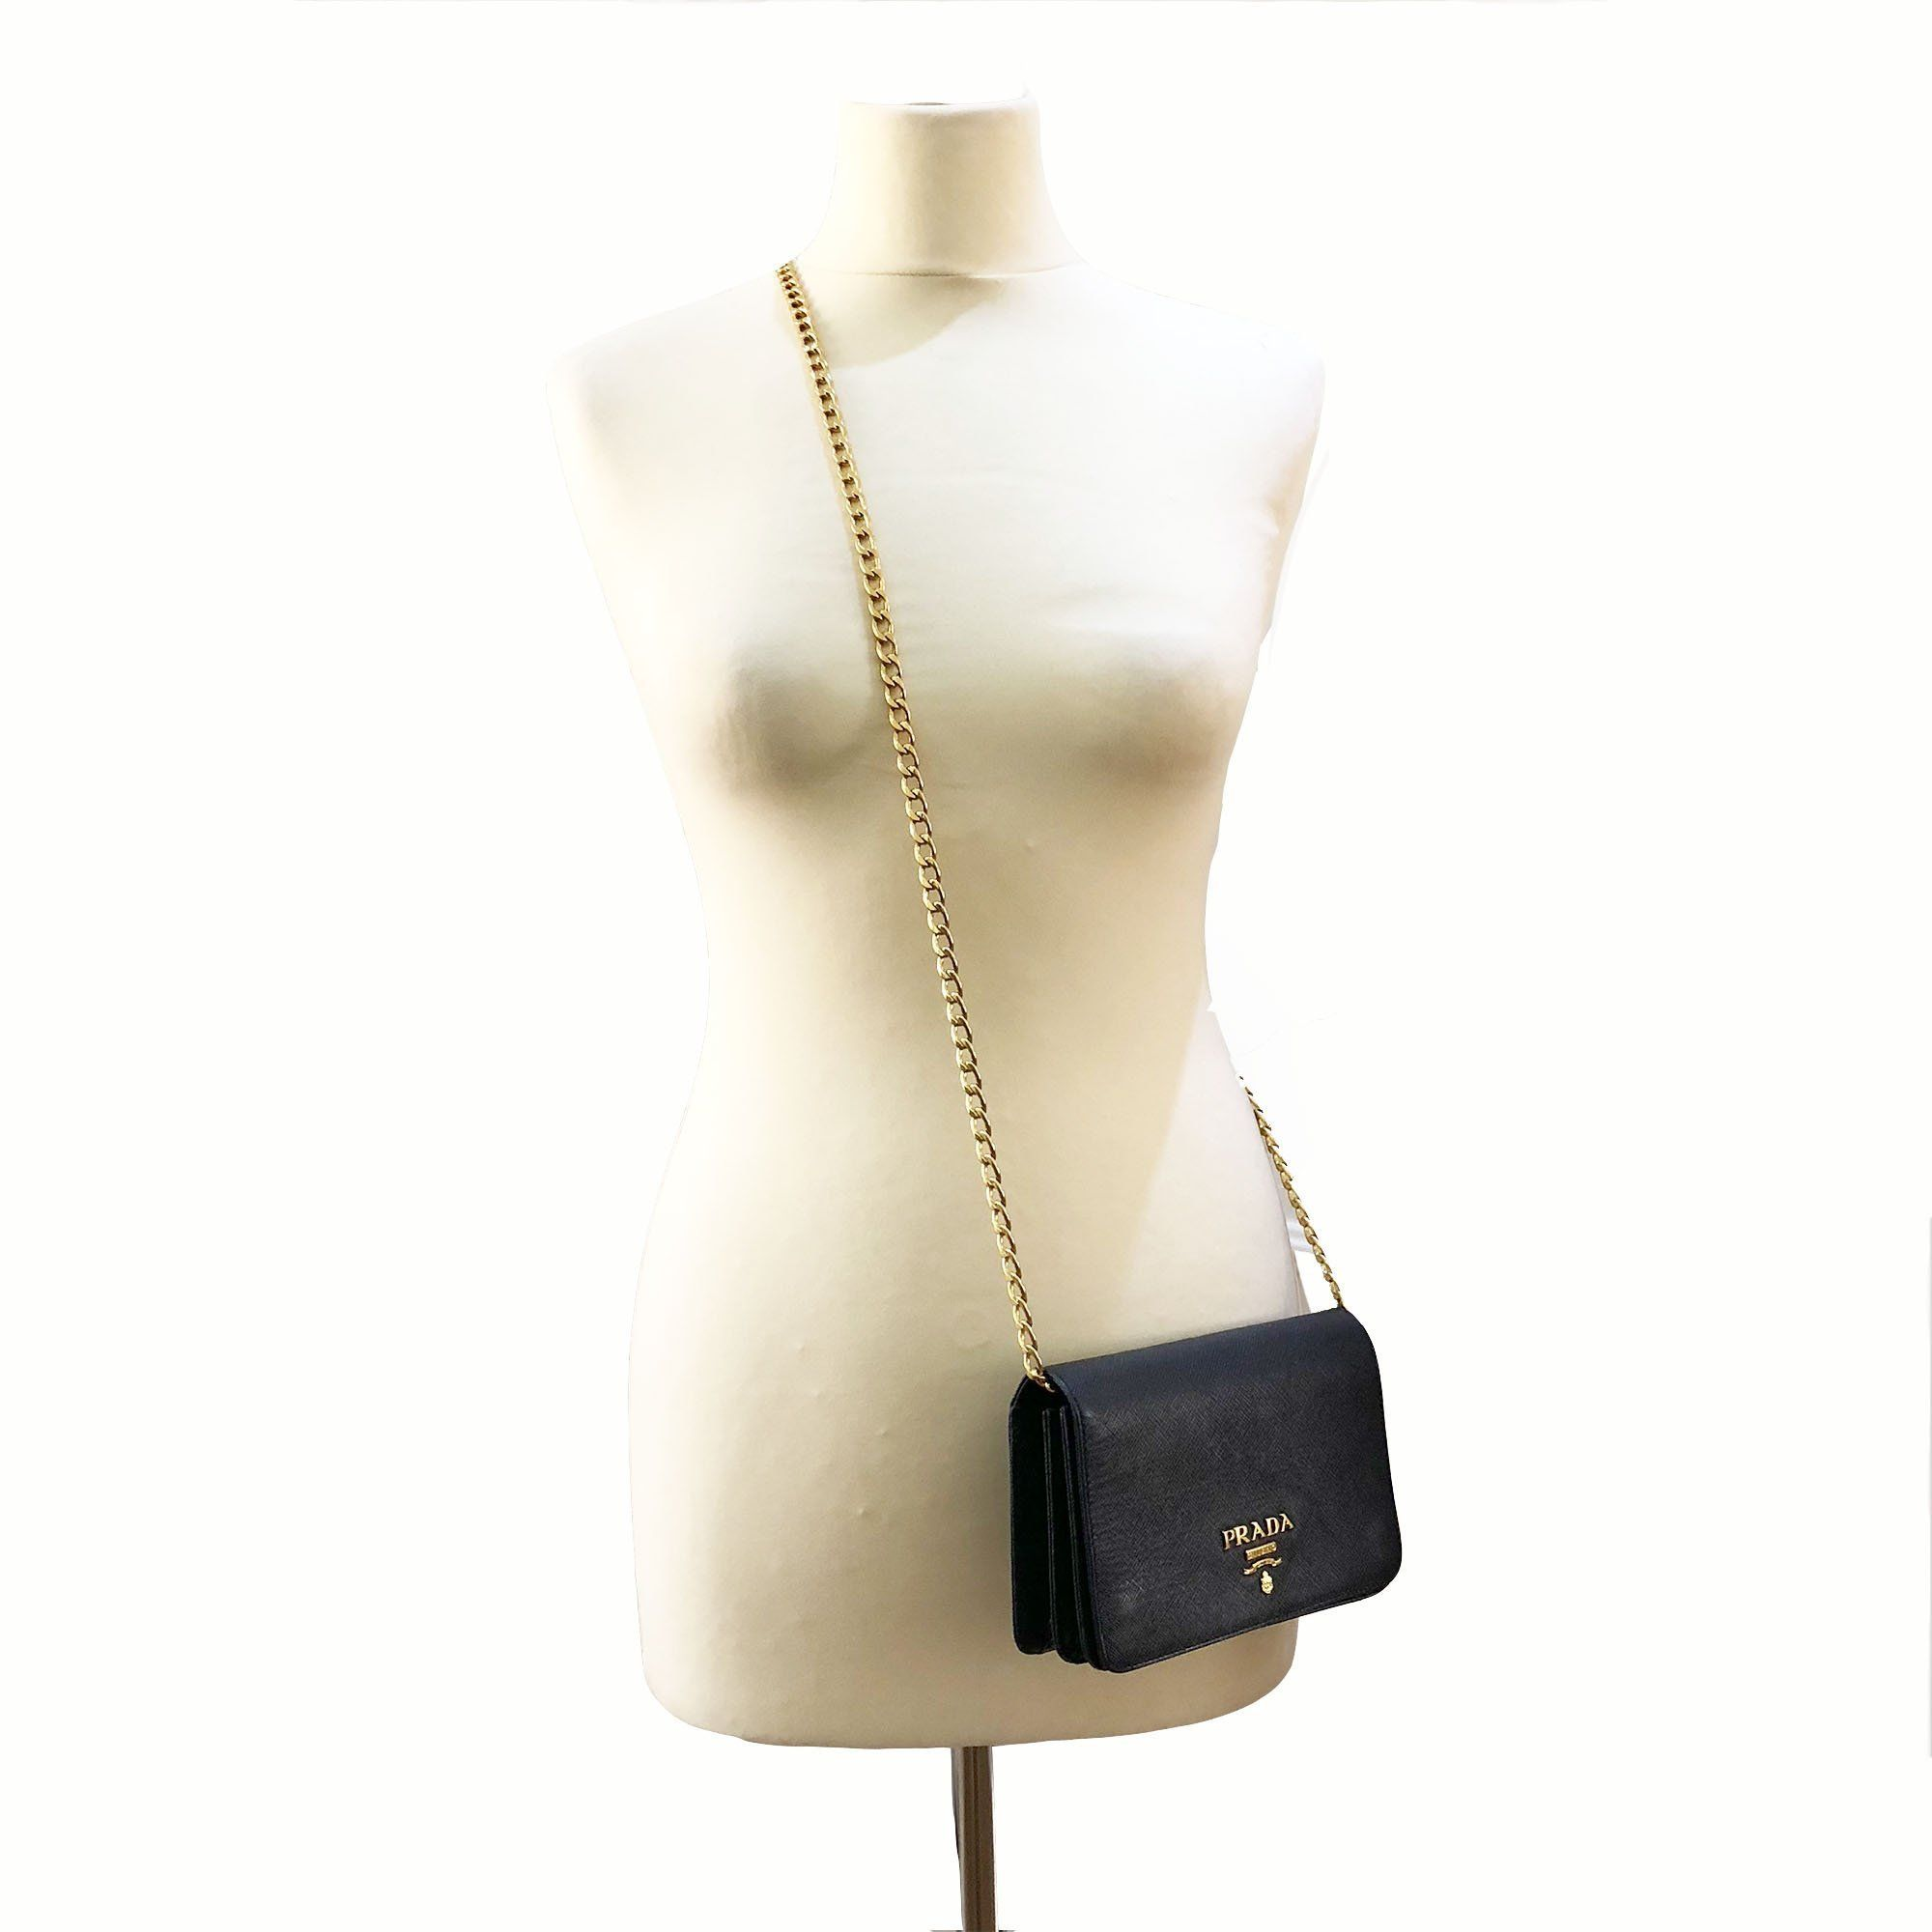 Prada Saffiano Black Cross Body Bag